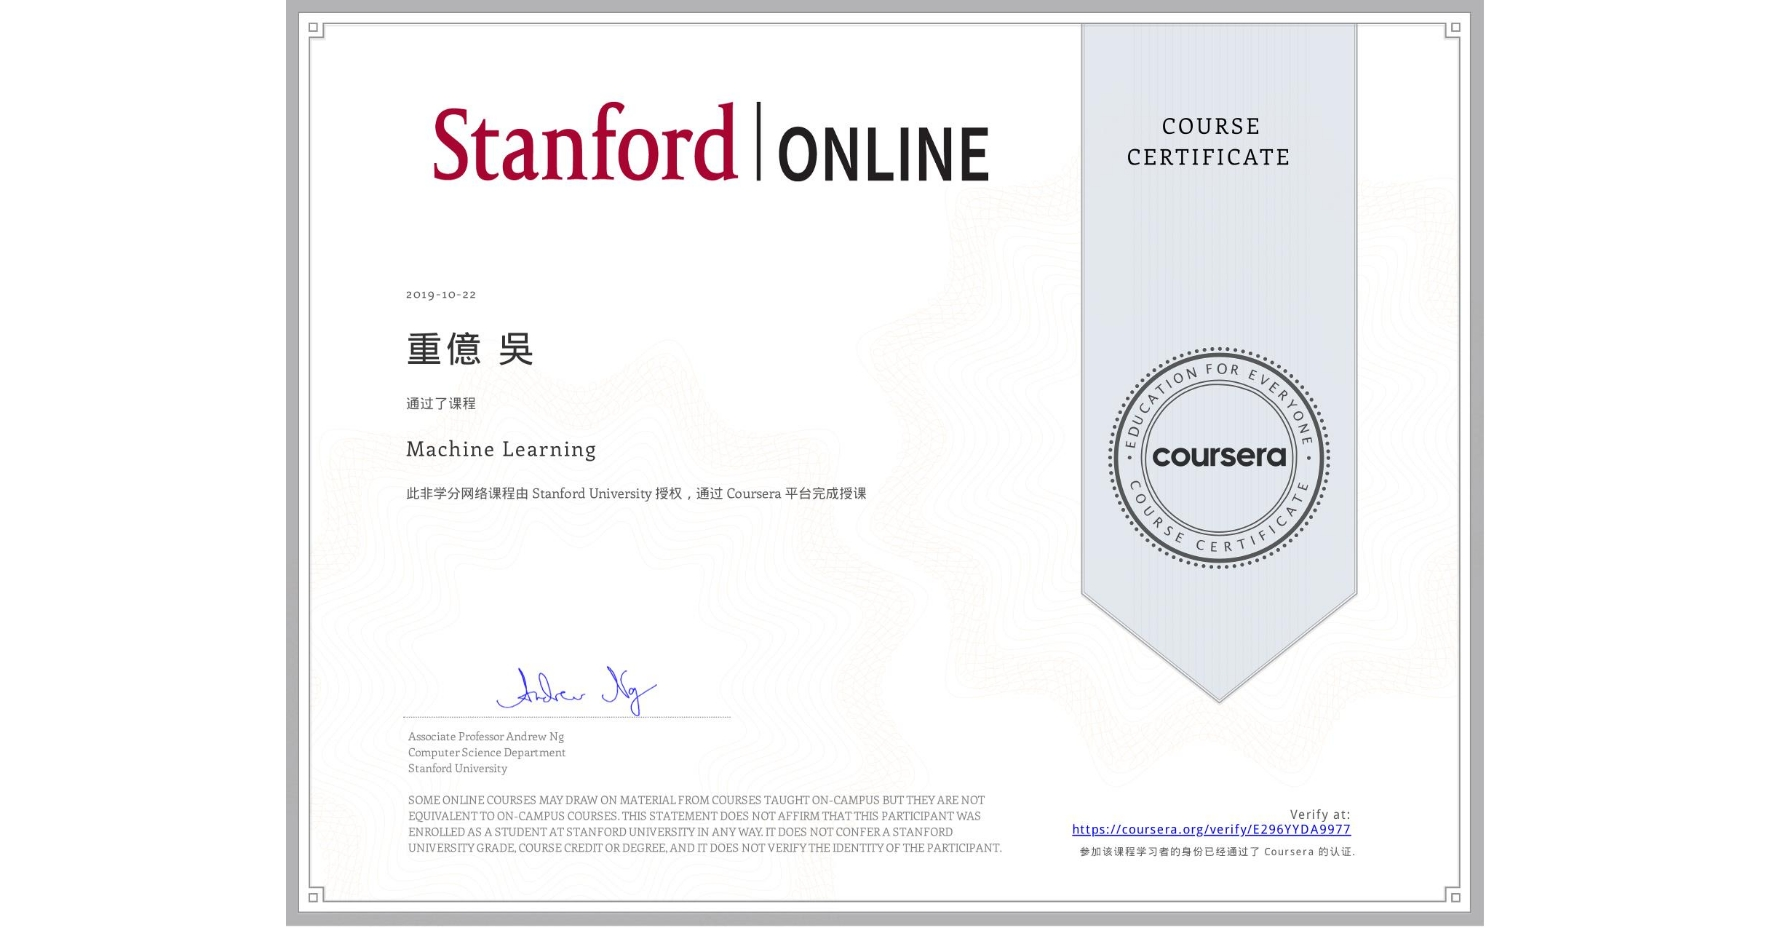 View certificate for 重億 吳, Machine Learning, an online non-credit course authorized by Stanford University and offered through Coursera